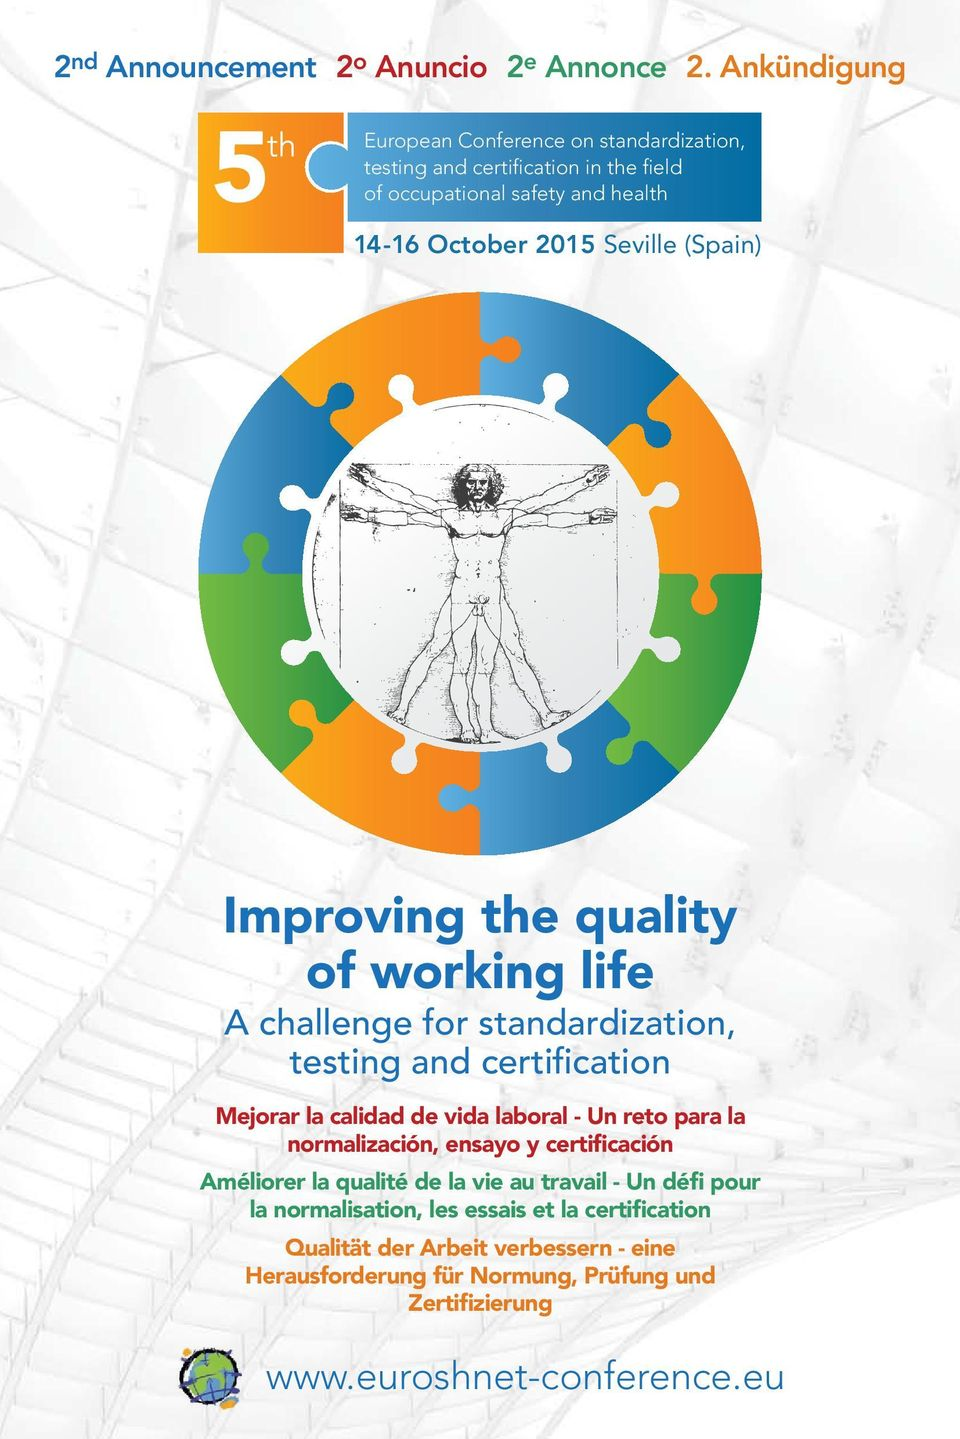 (Spain) Improving the quality of working life A challenge for standardization, testing and certification Mejorar la calidad de vida laboral - Un reto para